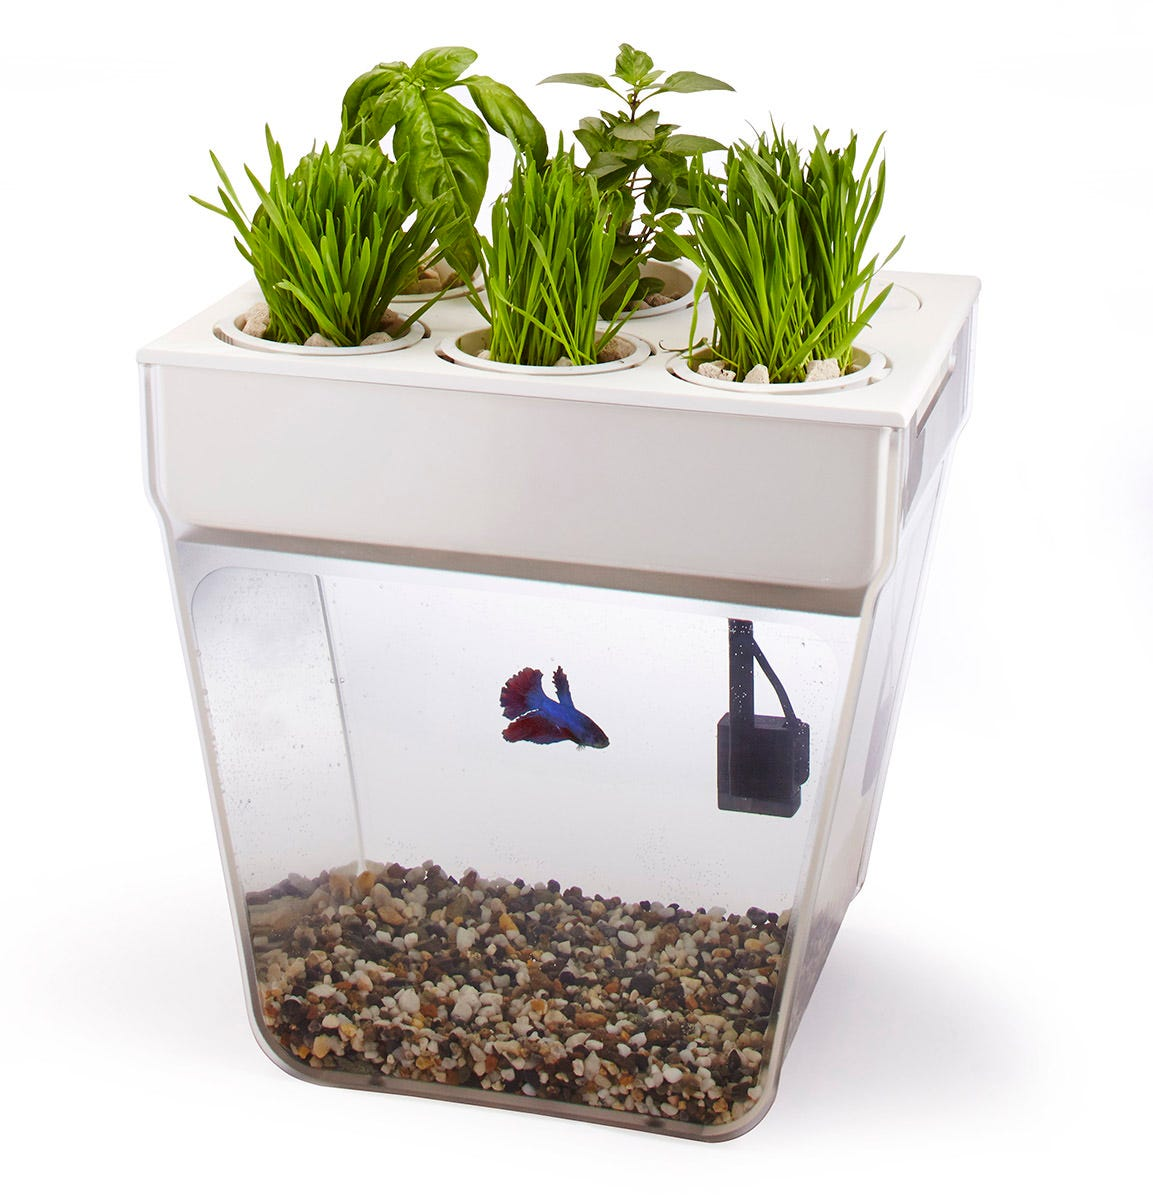 Back to the Roots - Water Garden - Desktop Aquaponics *DISCONTINUED* This item has been discontinued. We recommend one of the Related Products below as a replacement. CLOSED-LOOP ECOSYSTEM. This 3-gallon fish tank is a closed-loop, self-cleaning ecosystem. Using the science of aquaponics, the fish waste naturally fertilizes the plants above, and the plants, in turn, clean the water for the fish. Great for small pet fish and growing fresh herbs above. The double-decker combination of garden and fish bowl creates a symbiotic ecosystem. In the top tray, basil, mint, spinach, baby greens, and other edible or decorative plants thrive as nutrient-rich water is circulated past their roots. That process purifies the water, which is then sent back to the 3-gallon tank below, creating a happy, healthy habitat for a betta fish. The Water Garden makes an intriguing visual centerpiece for your own environment, whether that's on a side table or countertop, in an office, classroom or kitchen. Made in Union City, California. The Water Garden comes with everything needed to get started including: 3-gallon tank 5 grow pots water pump gravel for tank Growstones™ for pots organic seeds from Seeds of Change® (Genovese Basil and Wheatgrass) all-natural aquatic supplies and natural fish food from Kordon® HomeGrownPonics™ One coupon for a Betta fish from Petco®.